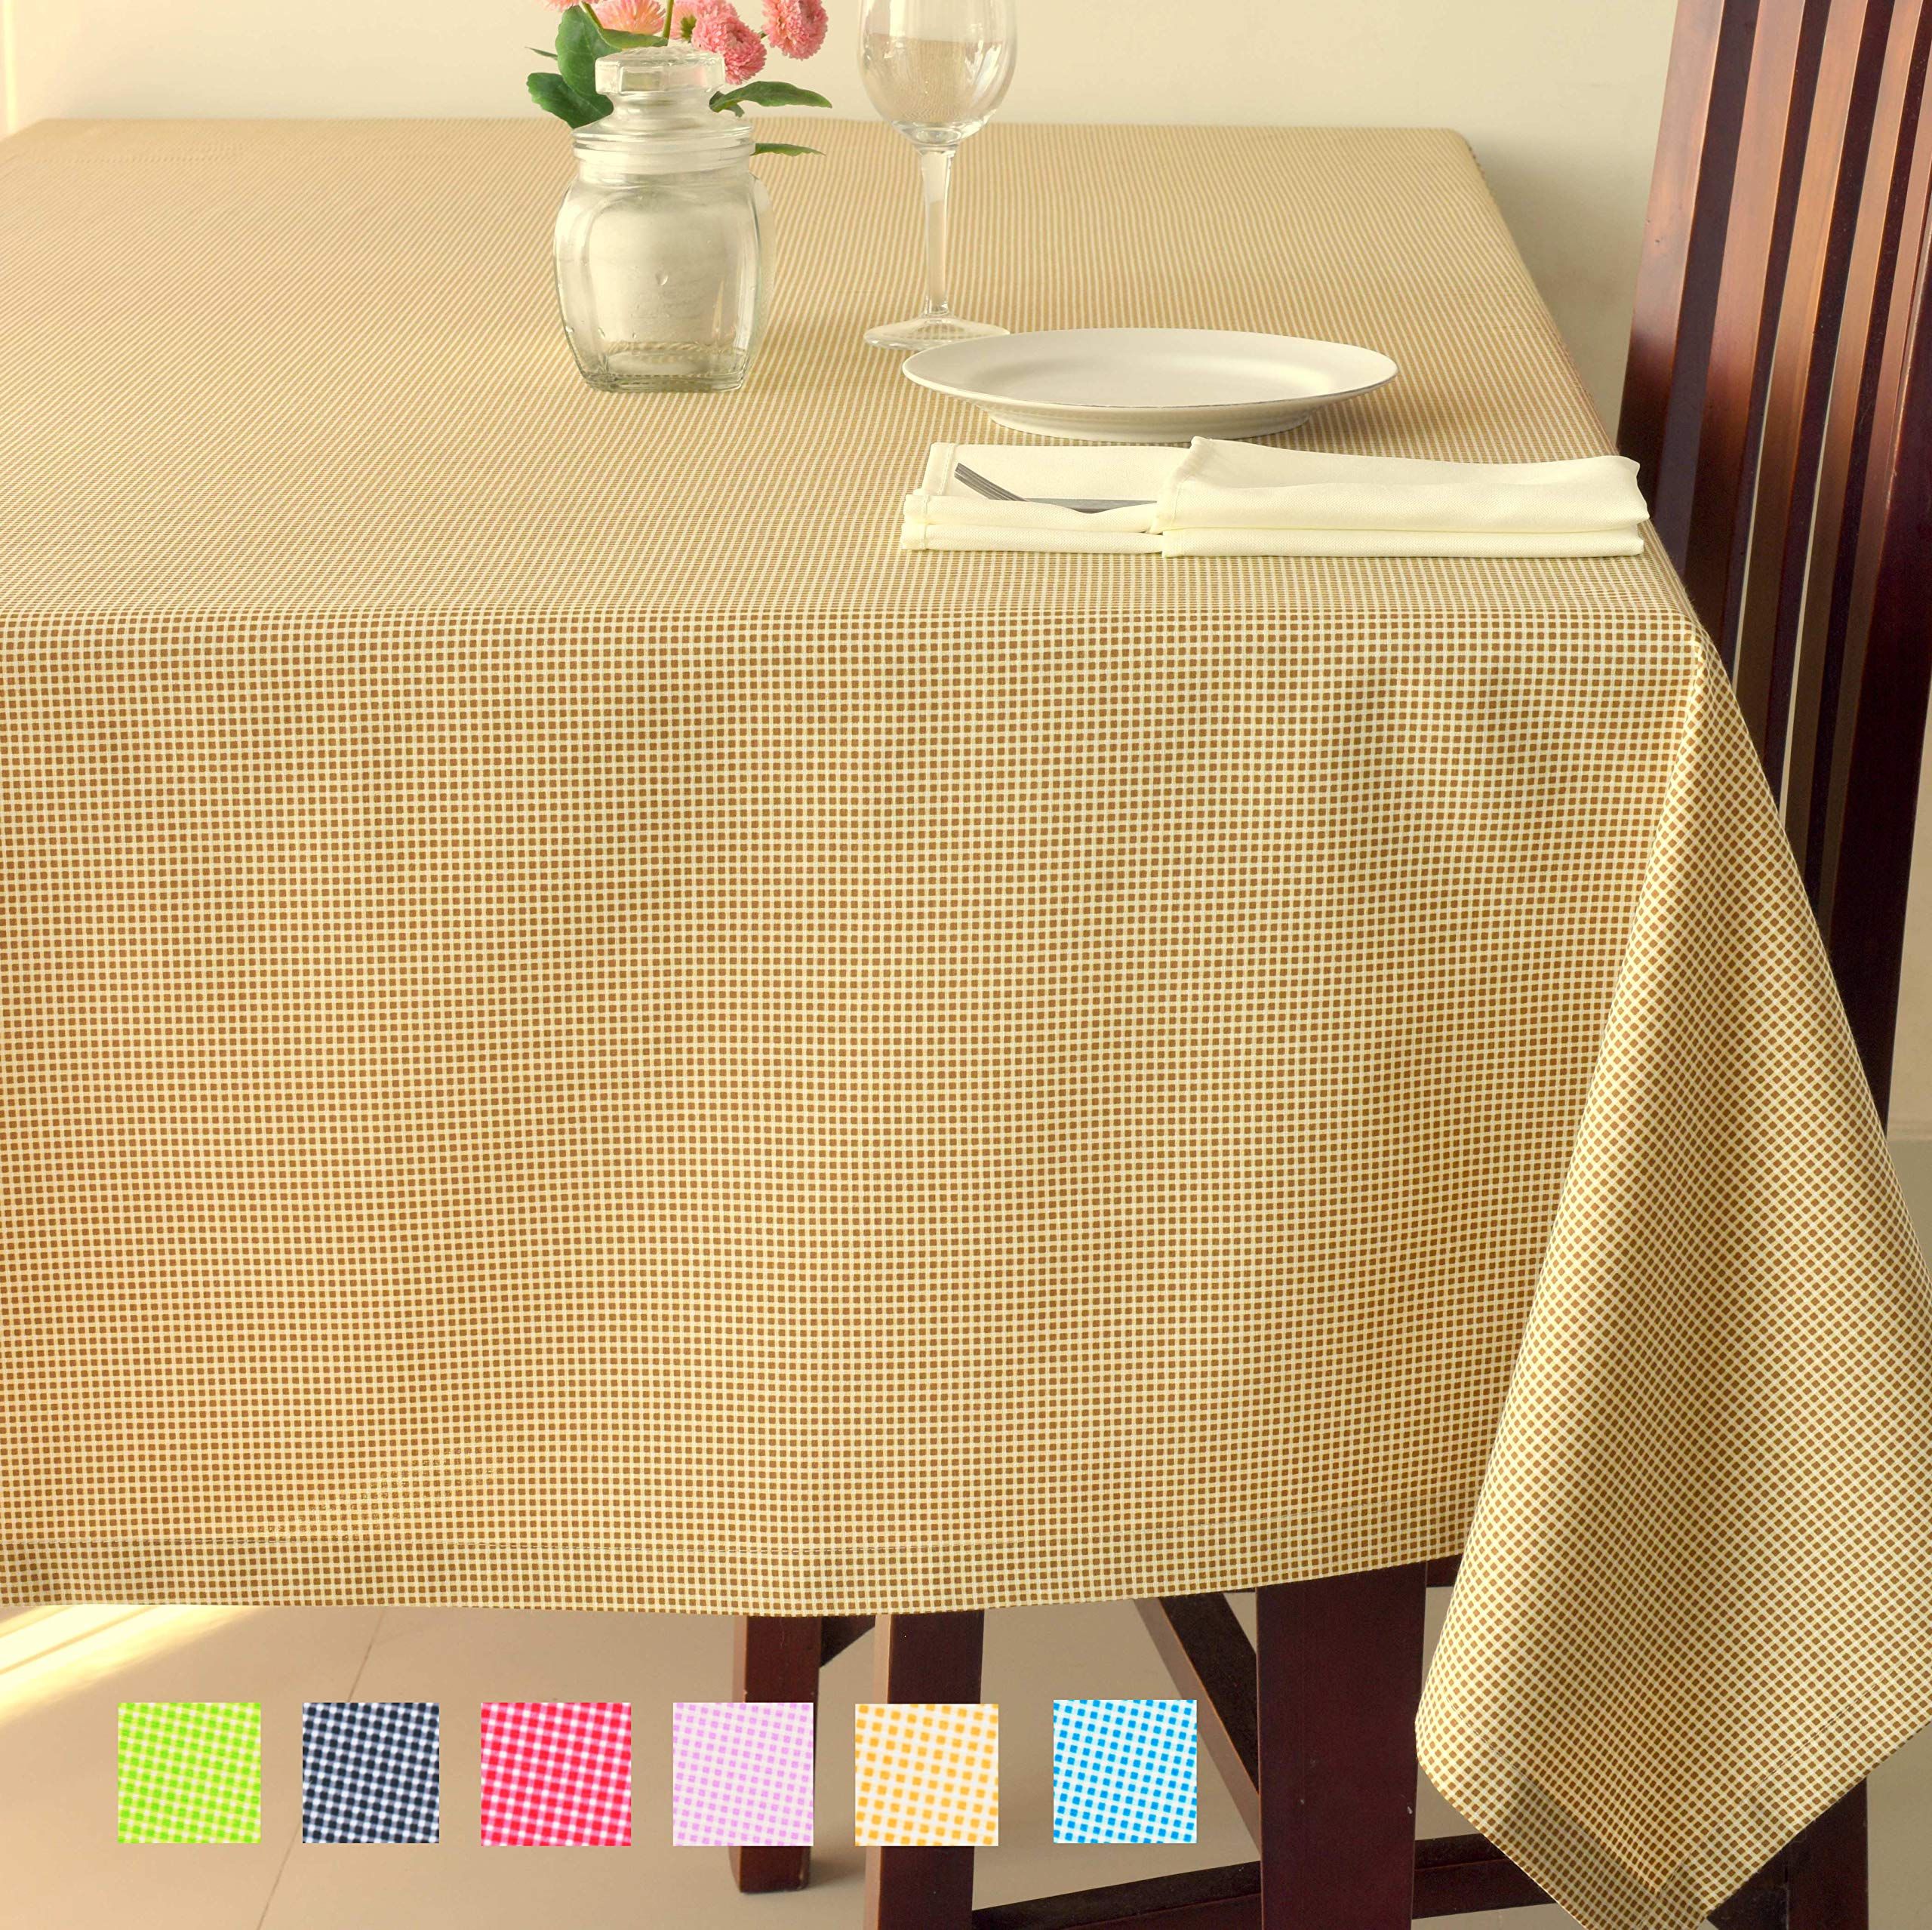 Checkered Poly-Cotton Tablecloth - Soft Table Cover Kitchen Dining Room Restaurants Cafés Rectangle Square - Thanksgiving Christmas Dinner Wedding New Year Eve (BROWN Checkered, Square 70''x70'')